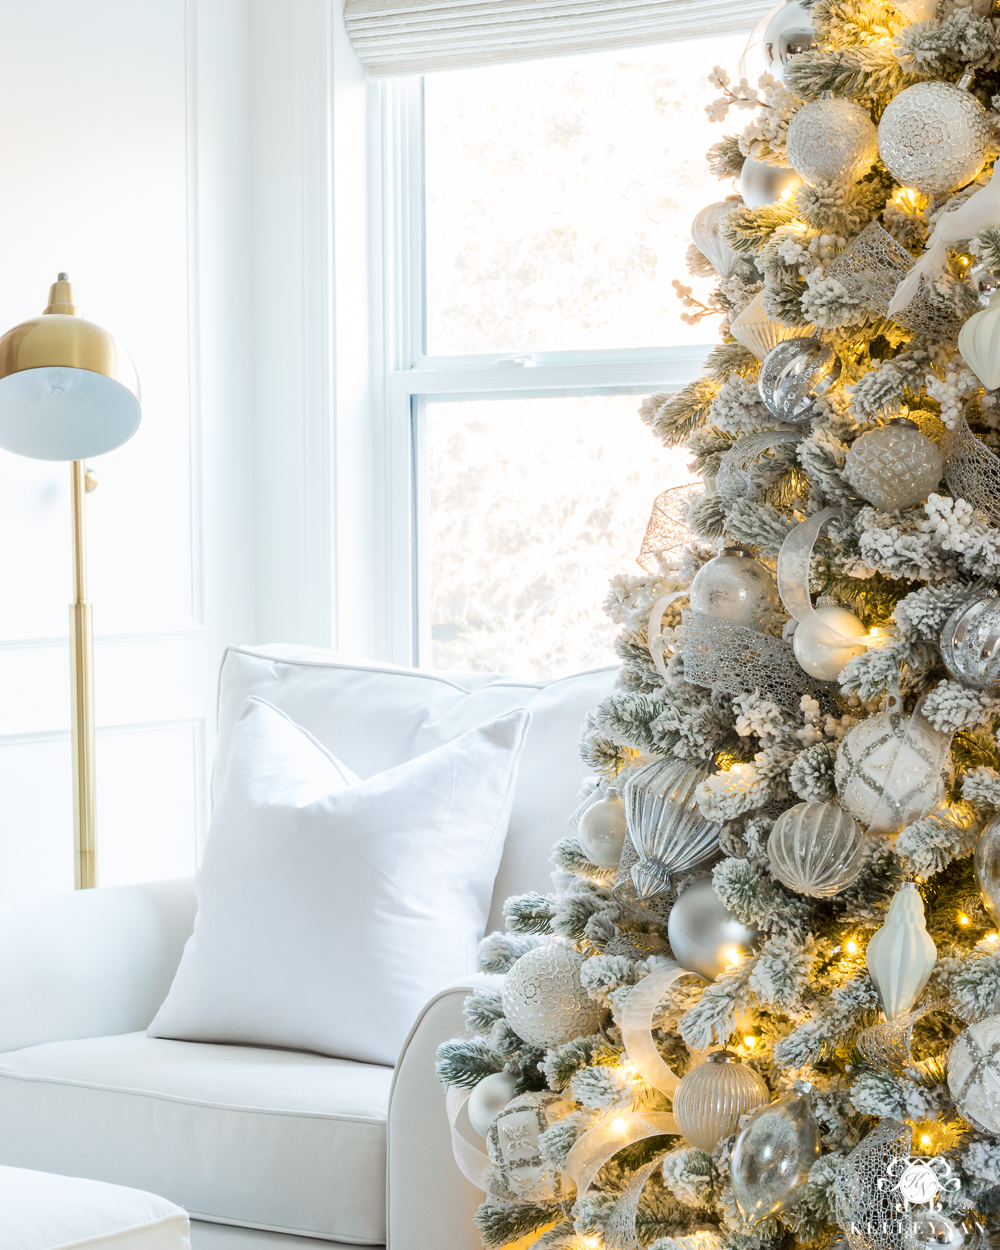 Cozy white sitting nook - bedroom Christmas decorating ideas